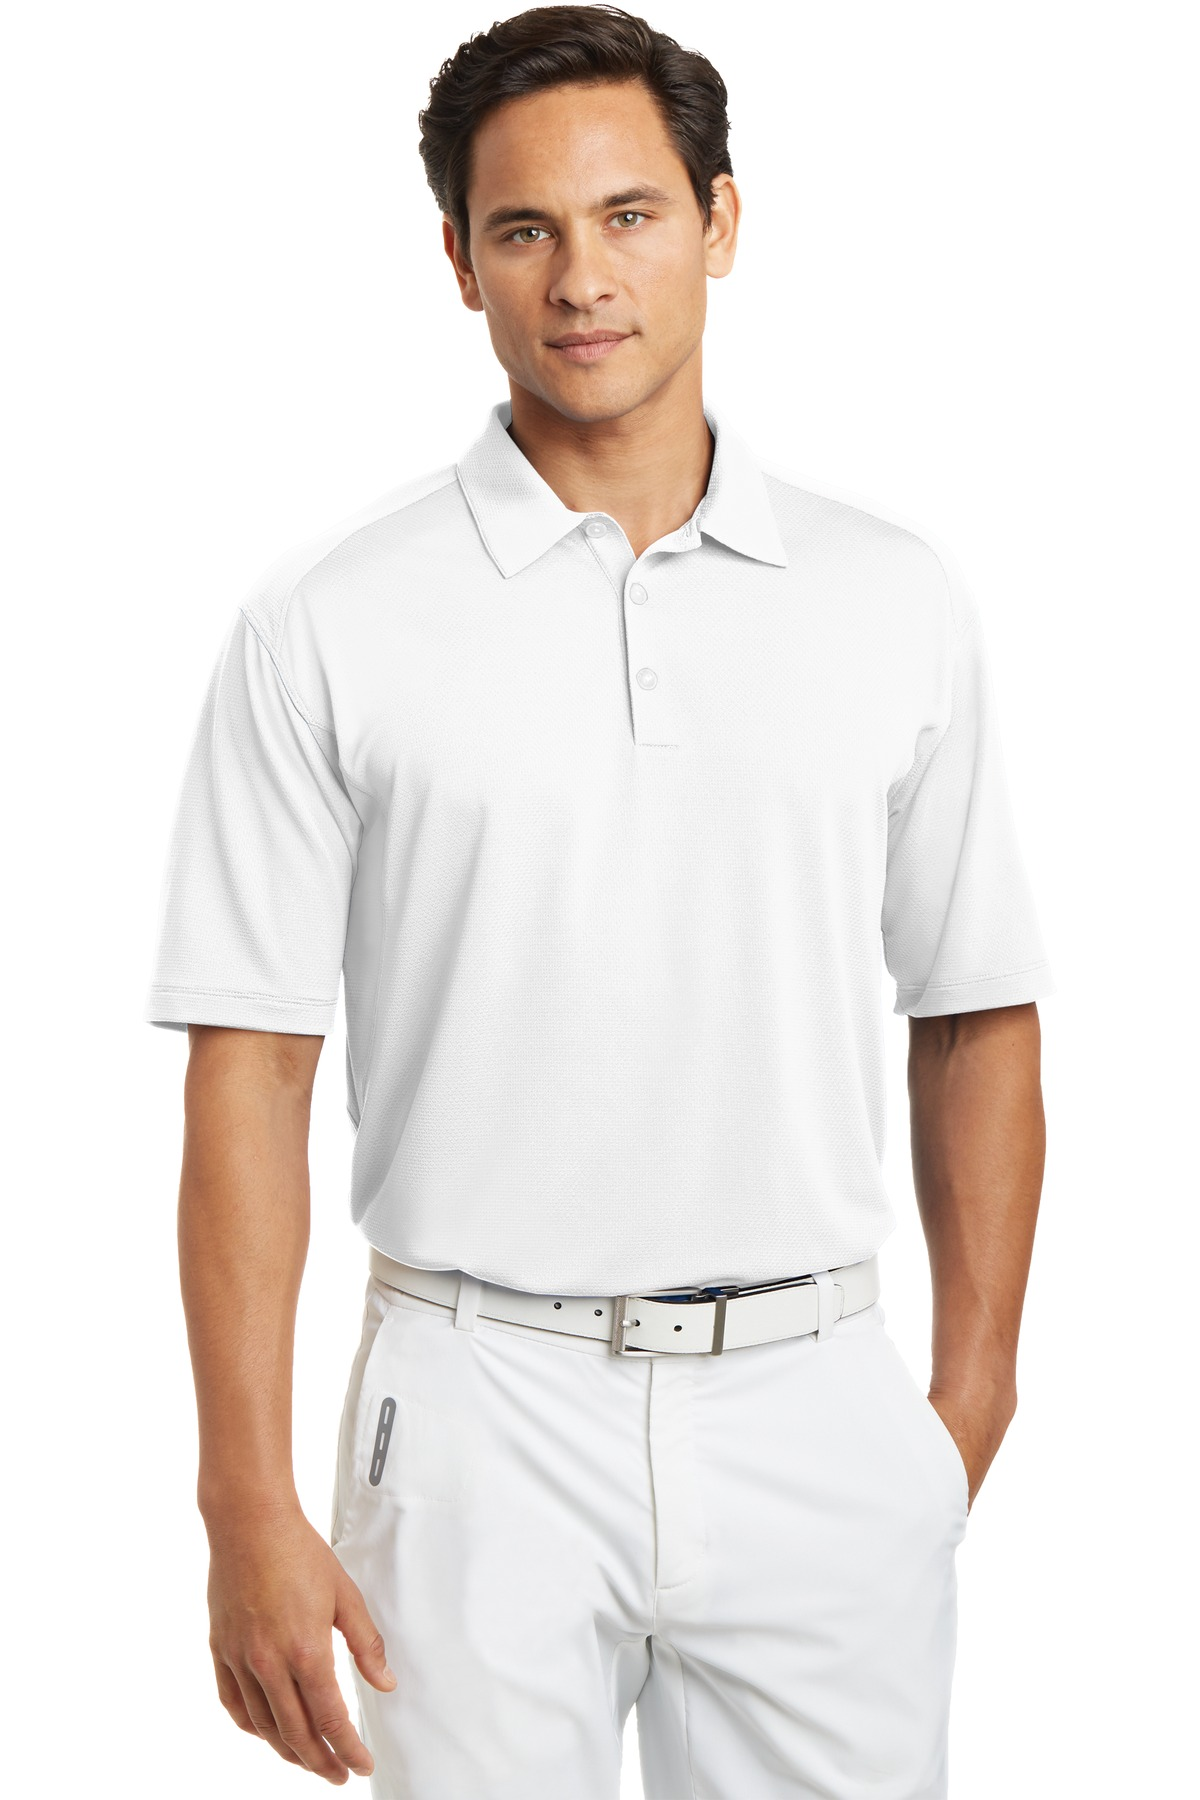 Nike Dri-FIT Mini Texture Polo - 378453